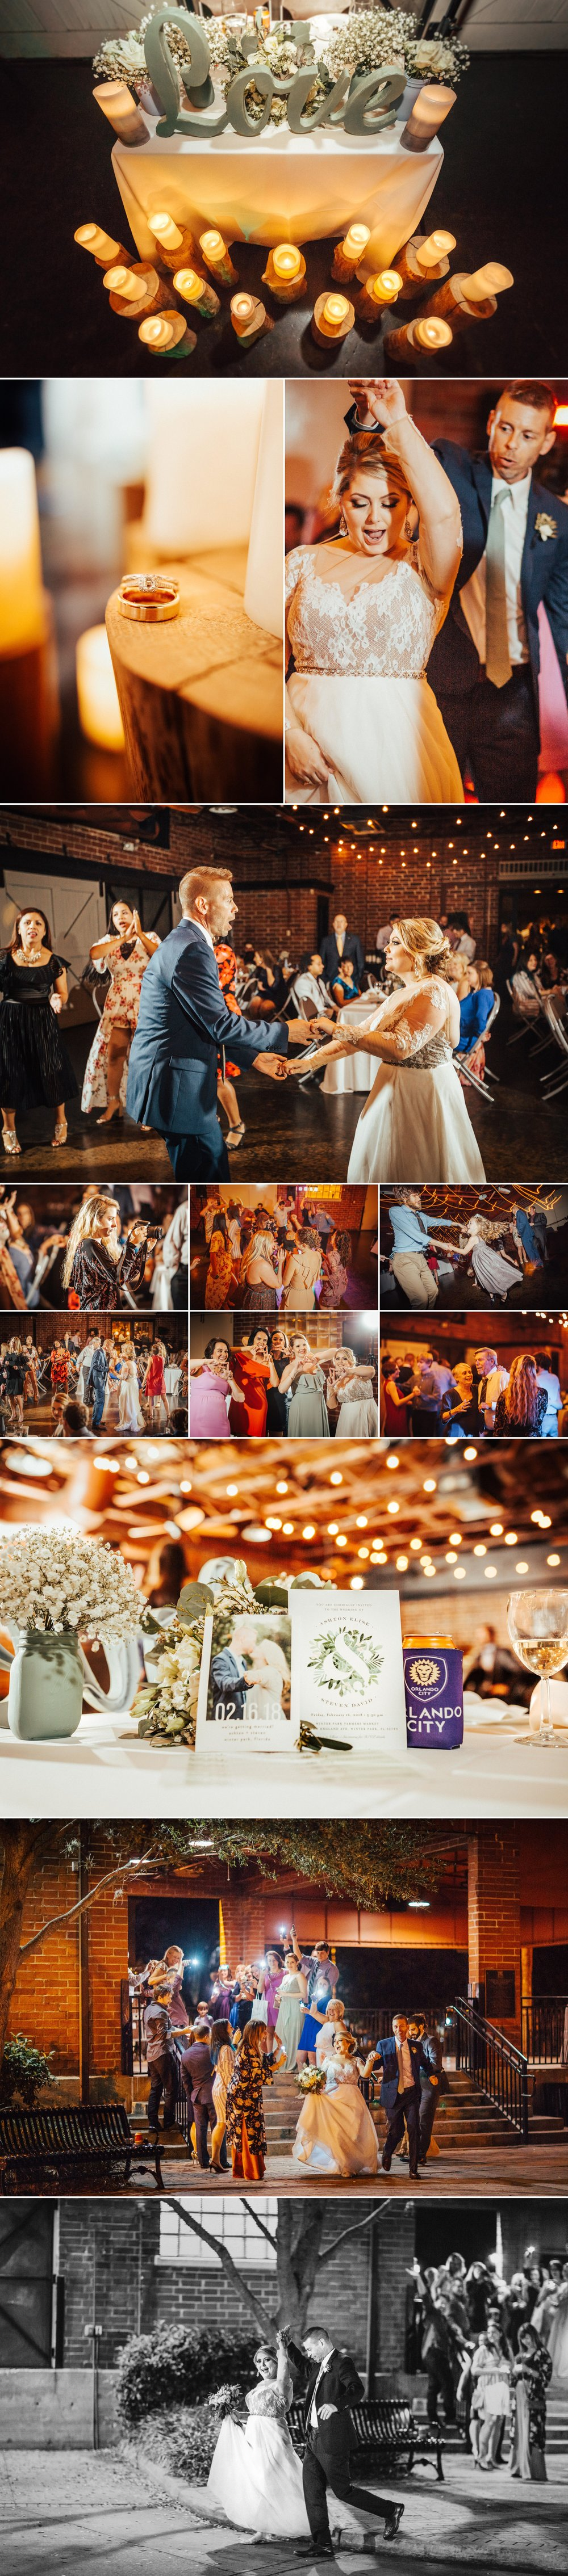 Greenery & French Blue Rustic Chic Elegant Wedding Reception by Over the Moon Orlando at the Winter Park Farmer's Market | Photographer Shaina DeCiryan Lifestyle + Wedding Photography @shainadeciryan